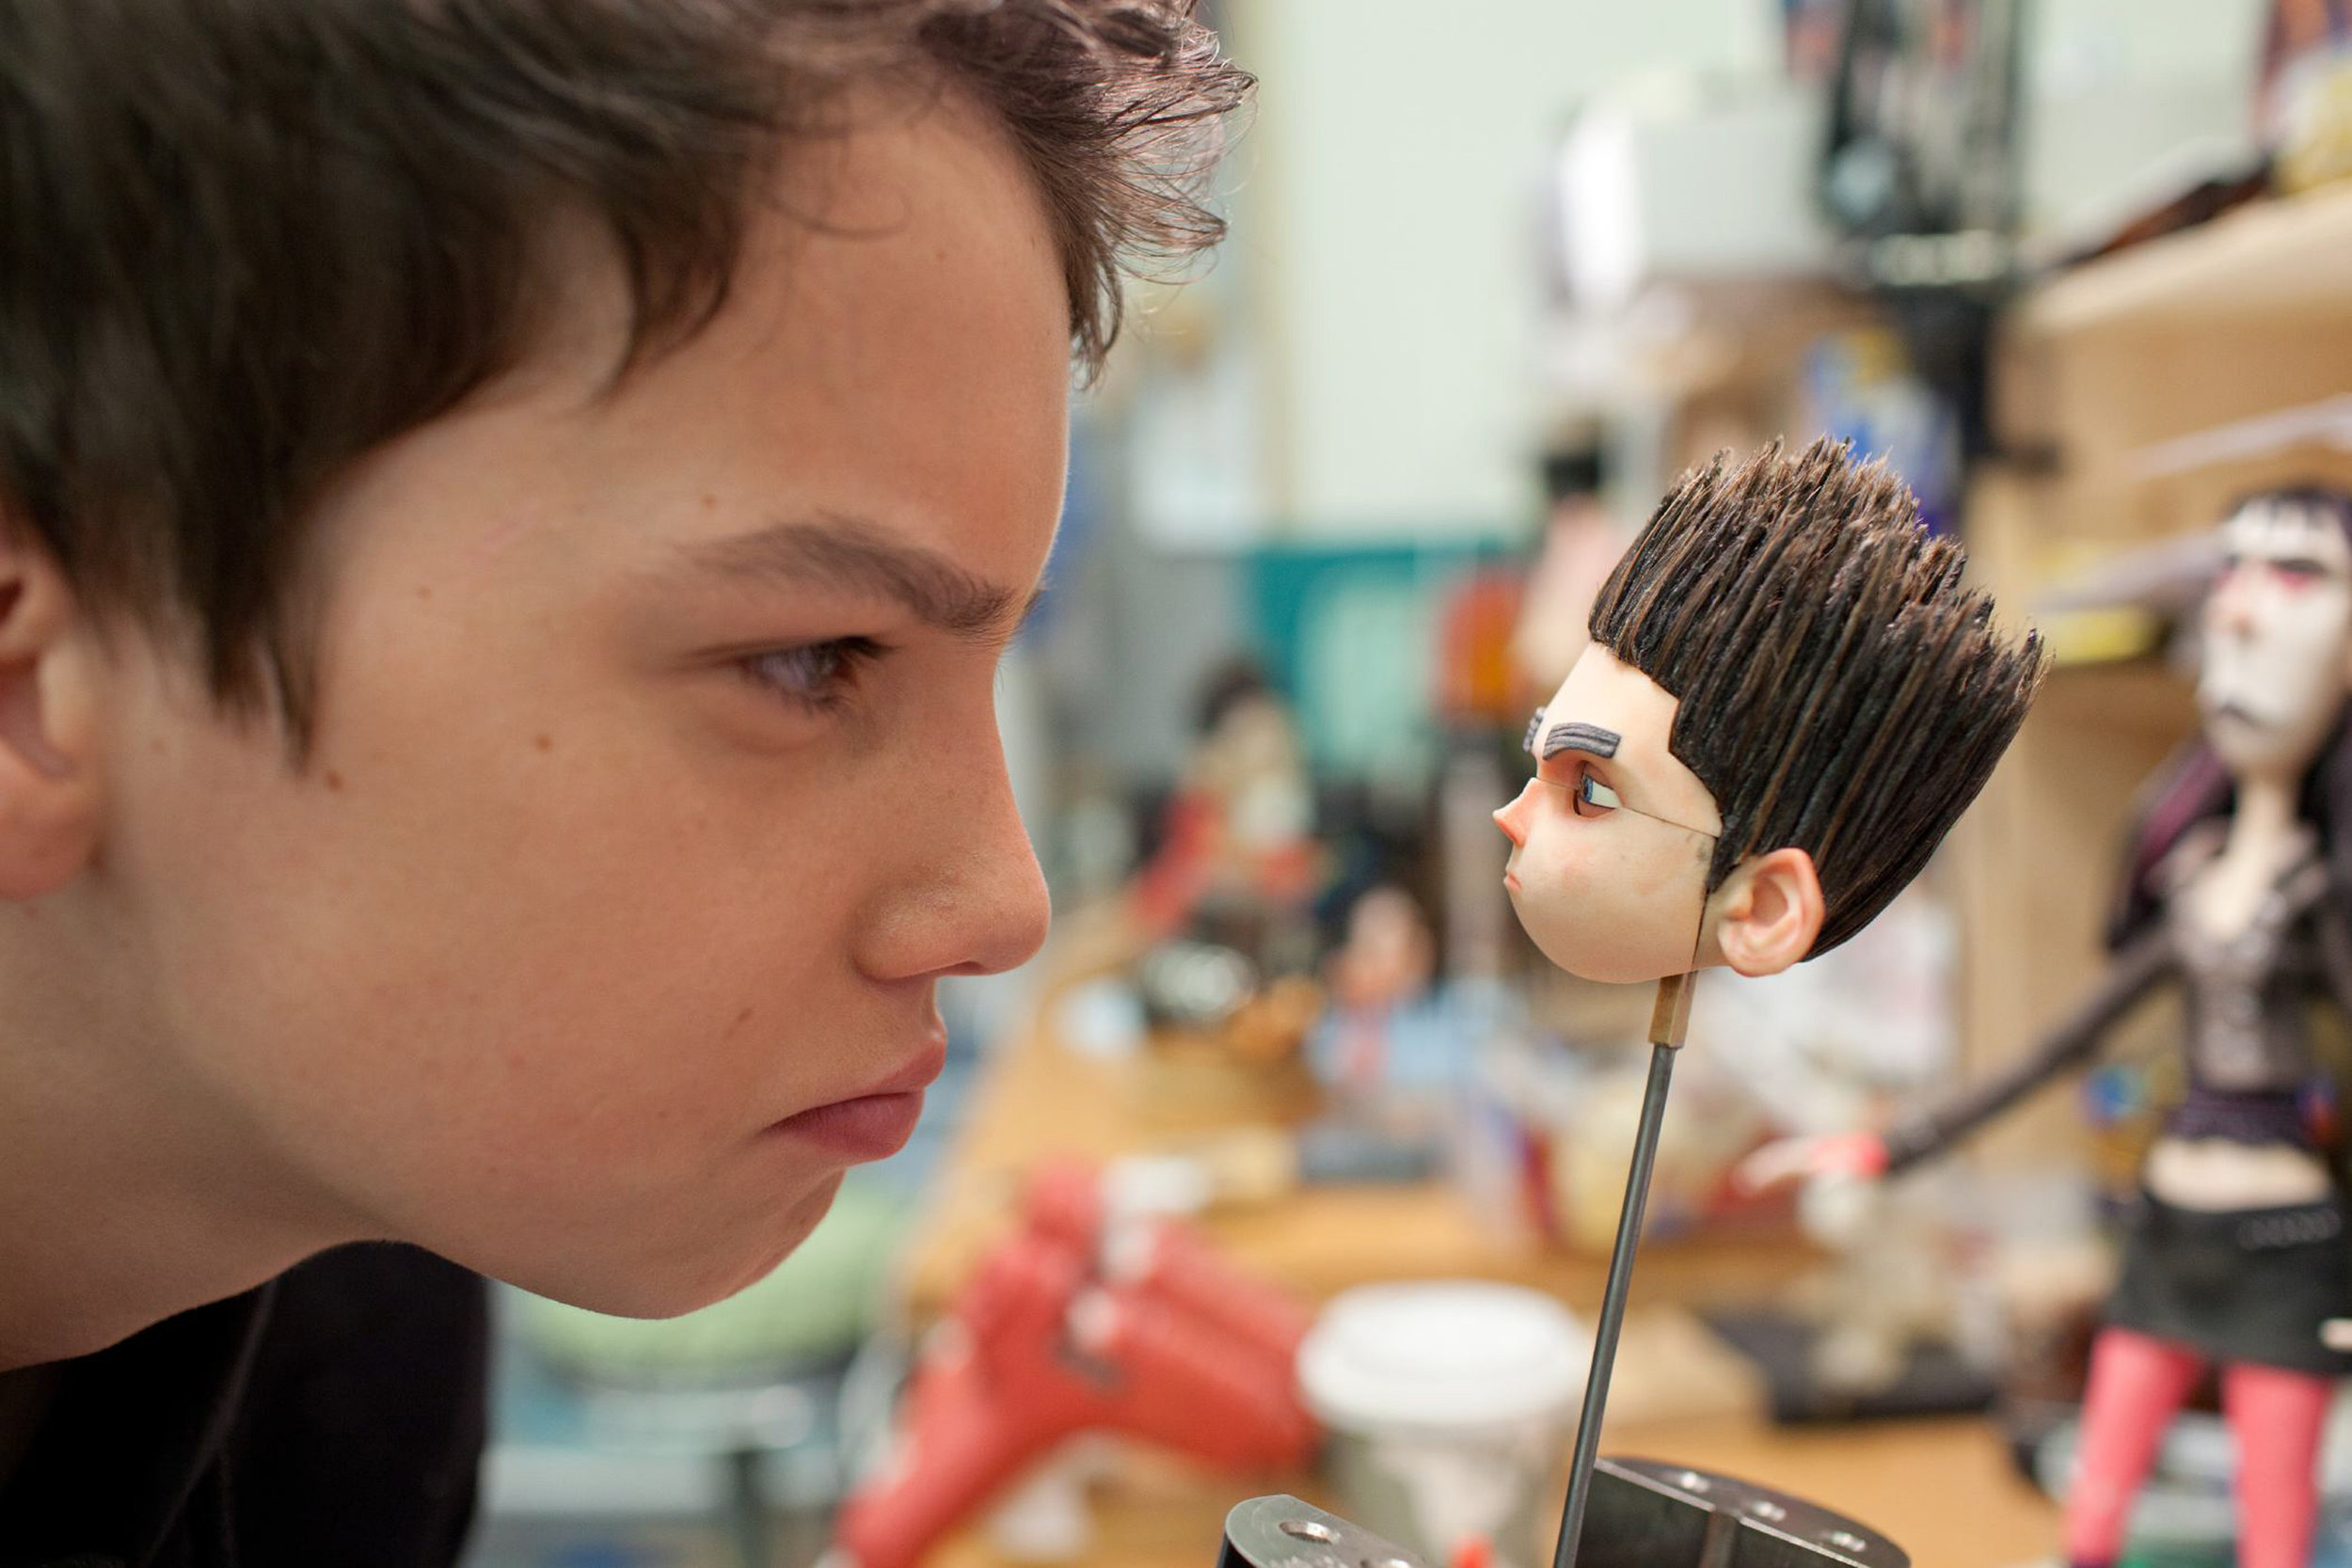 Actor Kodi Smit-McPhee comes face-to-face with an interim face for his character, Norman, ParaNorman is the new 3D stop-motion comedy thriller.  Credit: LAIKA, Inc.